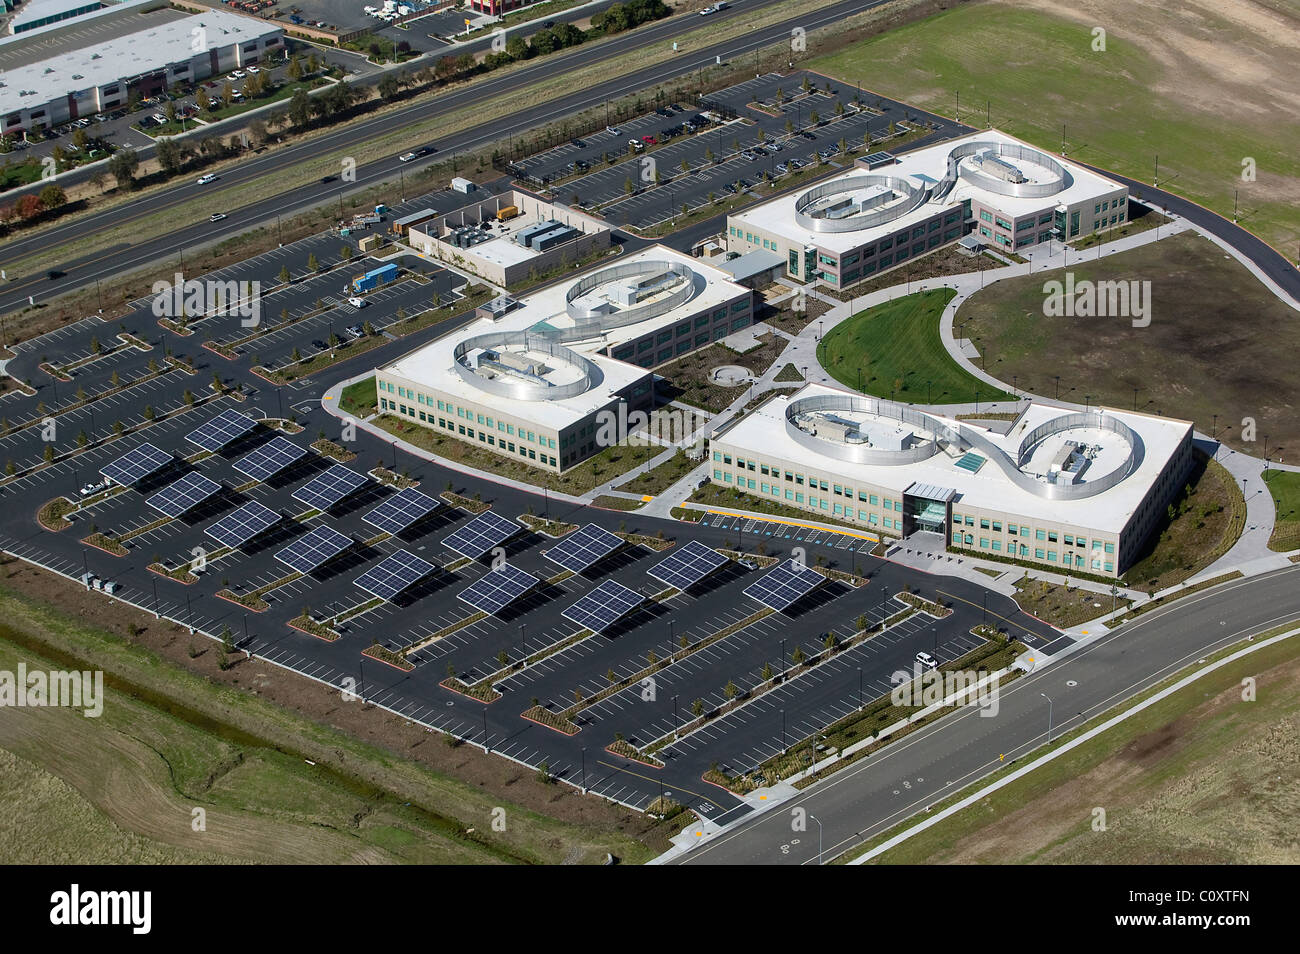 aerial view above solar panels placed in parking lot commercial office building Vacaville California - Stock Image